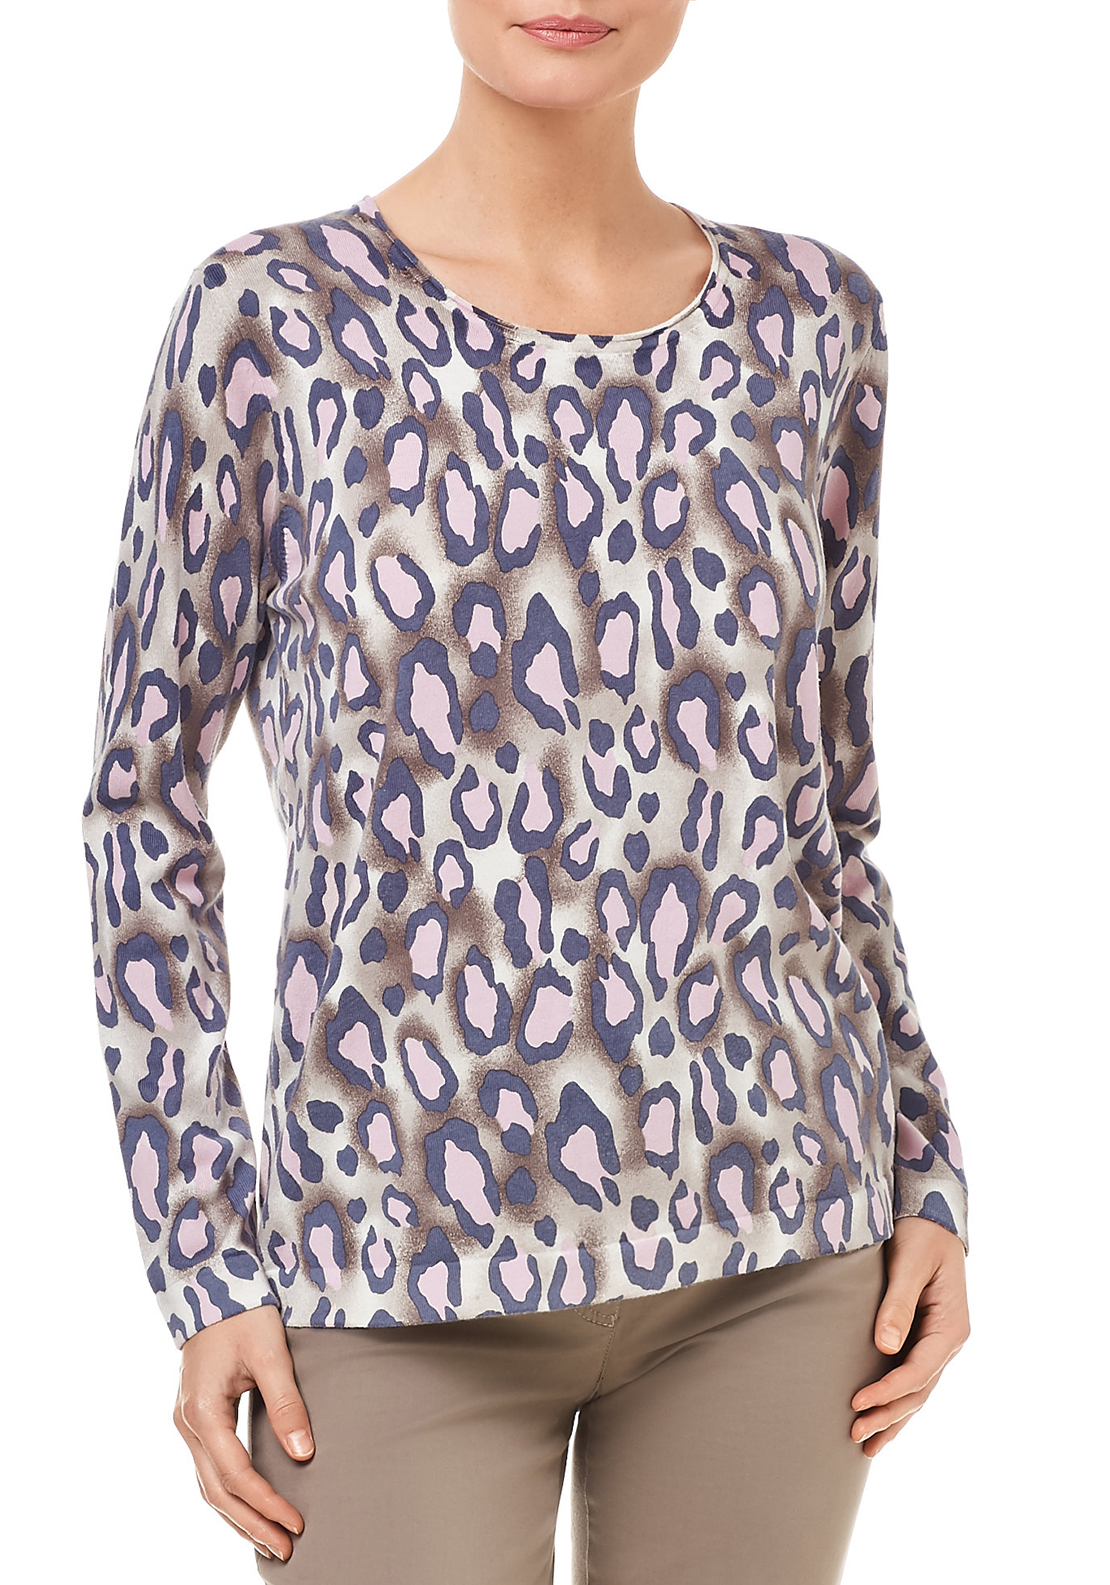 Gerry Weber Animal Pattern Fine Knit Jumper, Multi-coloured